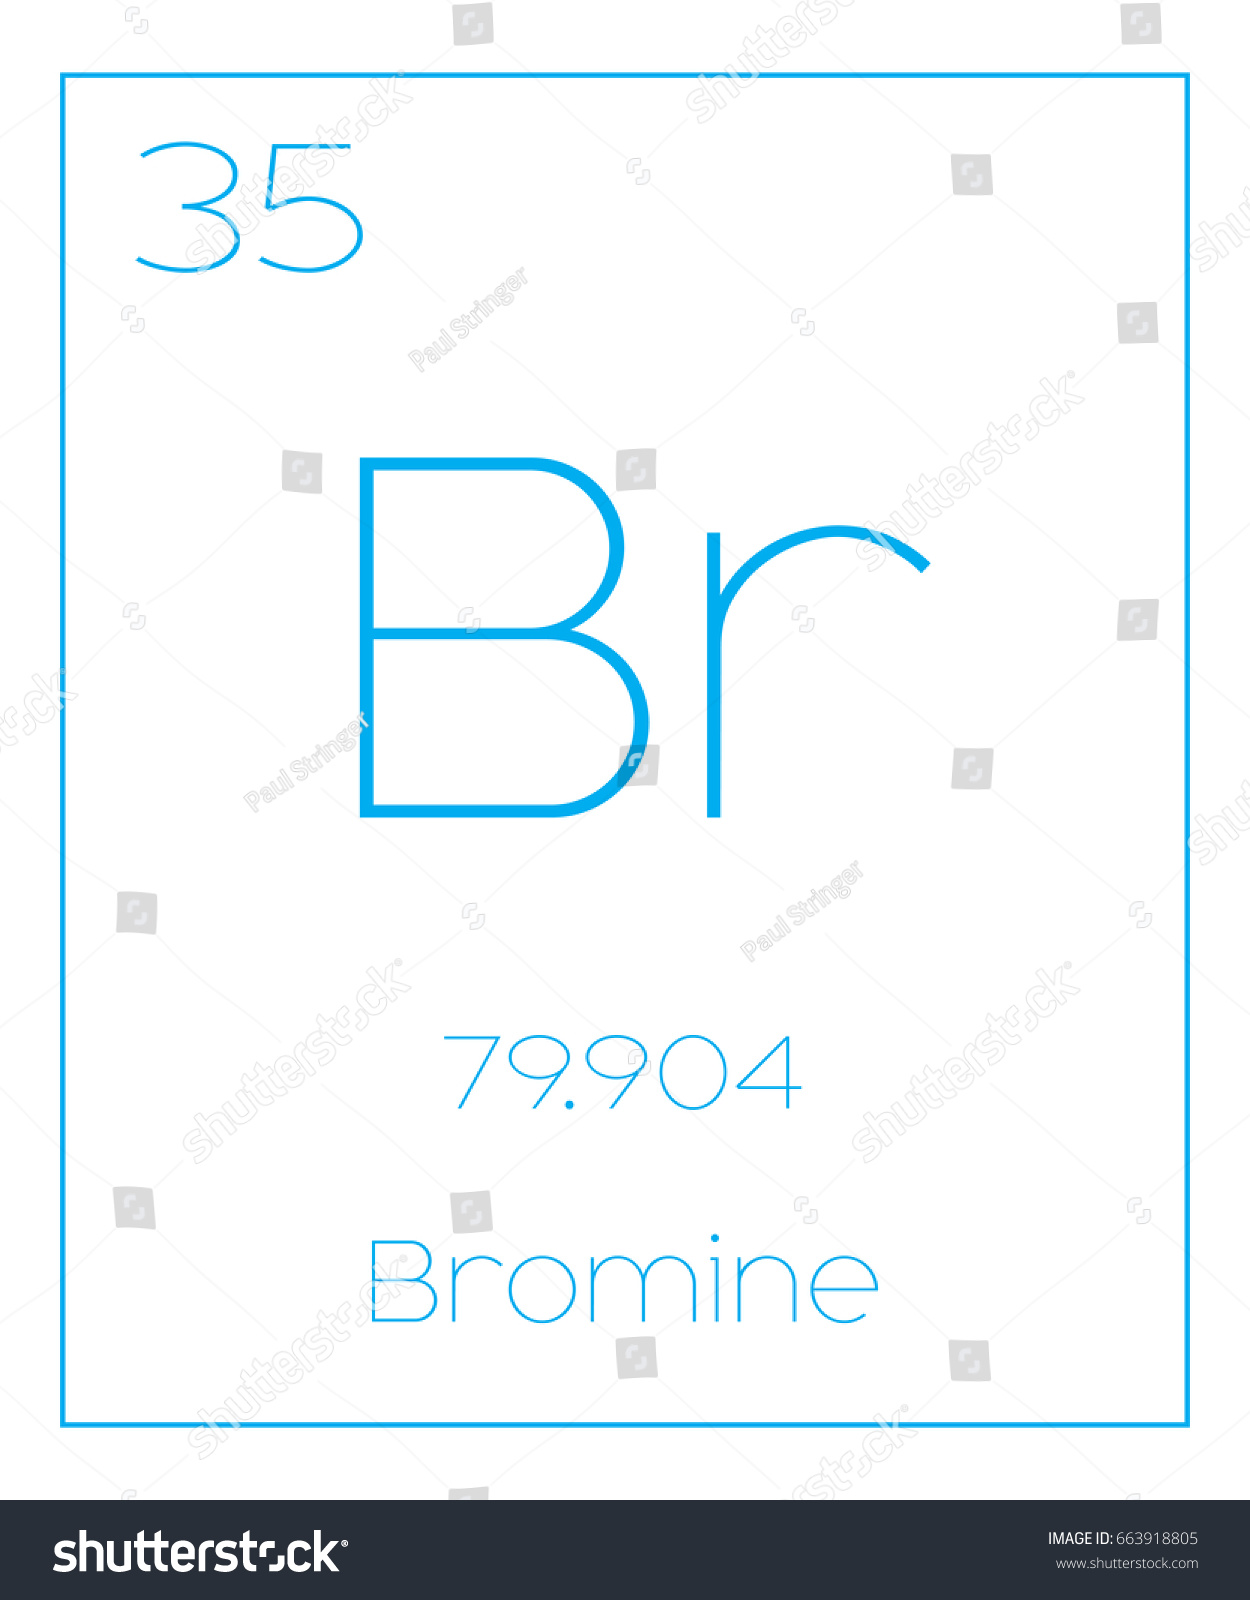 Illustration periodic element bromine stock vector 663918805 an illustration of the periodic element bromine biocorpaavc